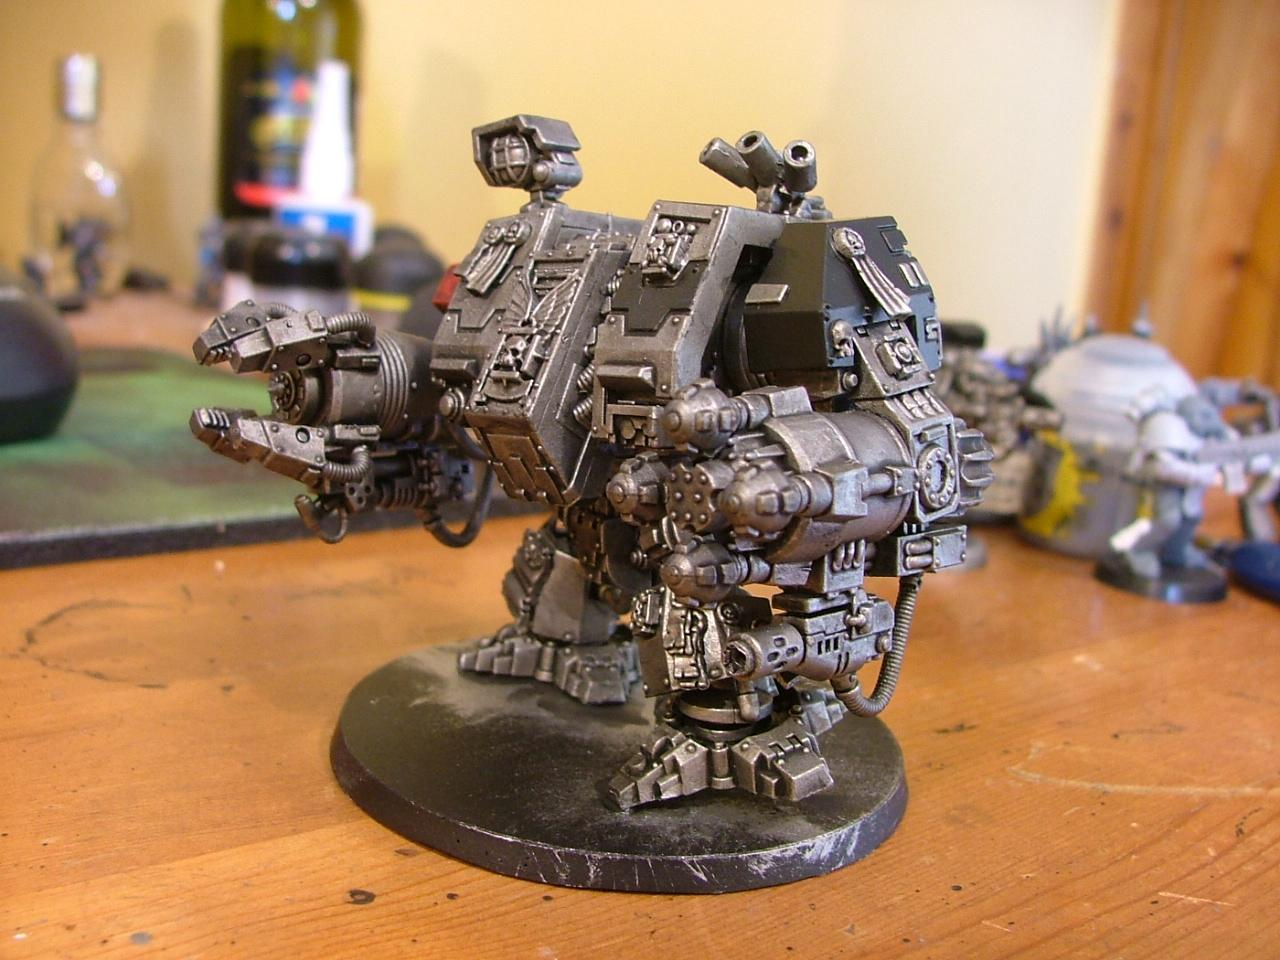 Dreadnought, Wip ironclad